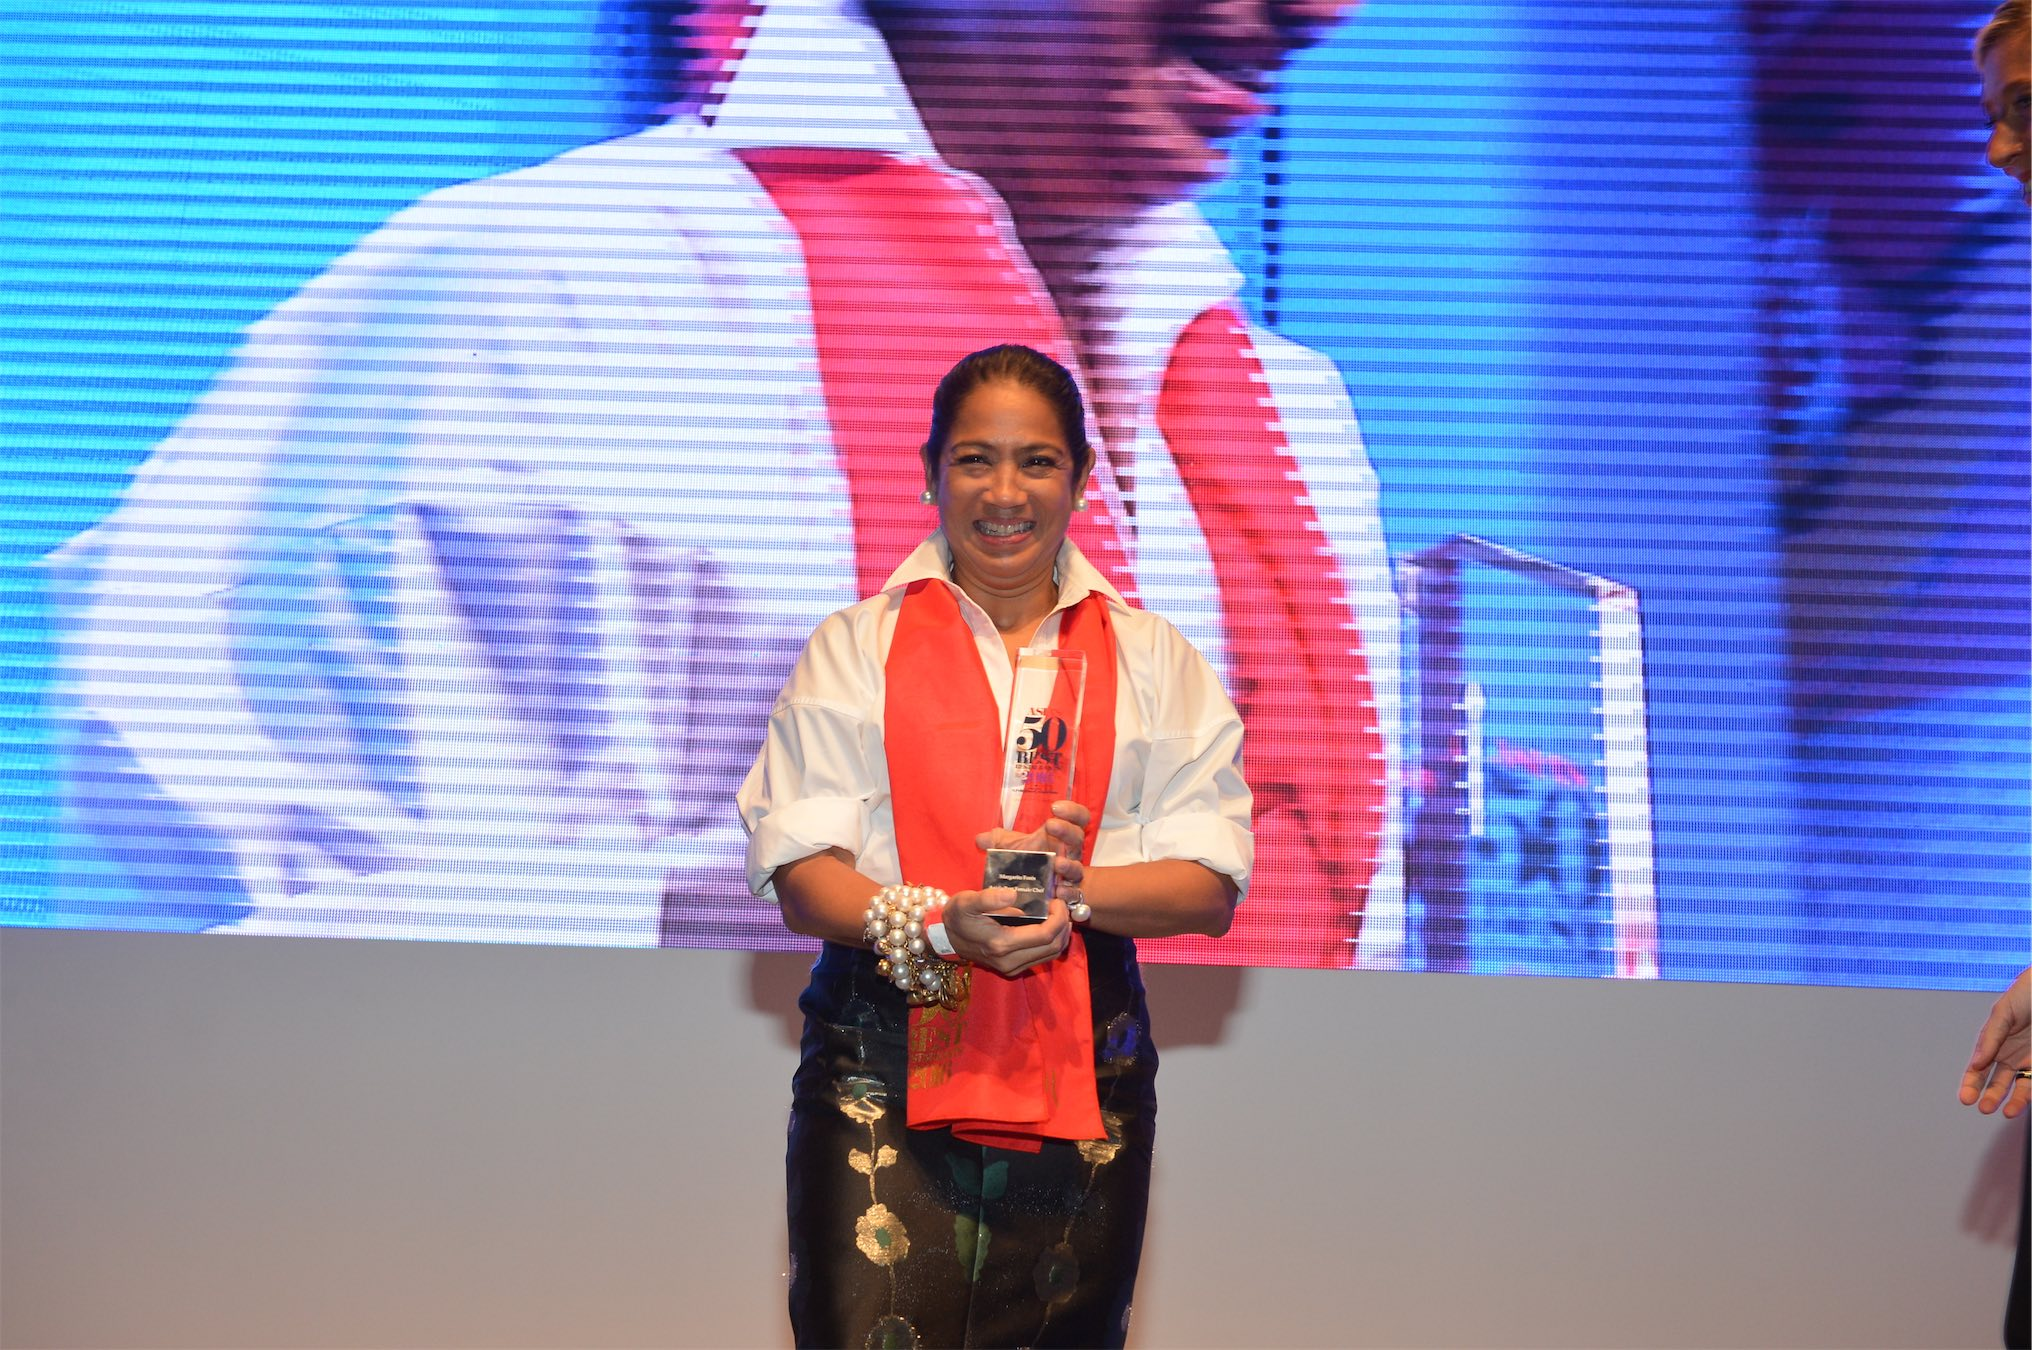 Chef Margarita Forés from the Philippines who is named Asia's Best Female Chef 2016